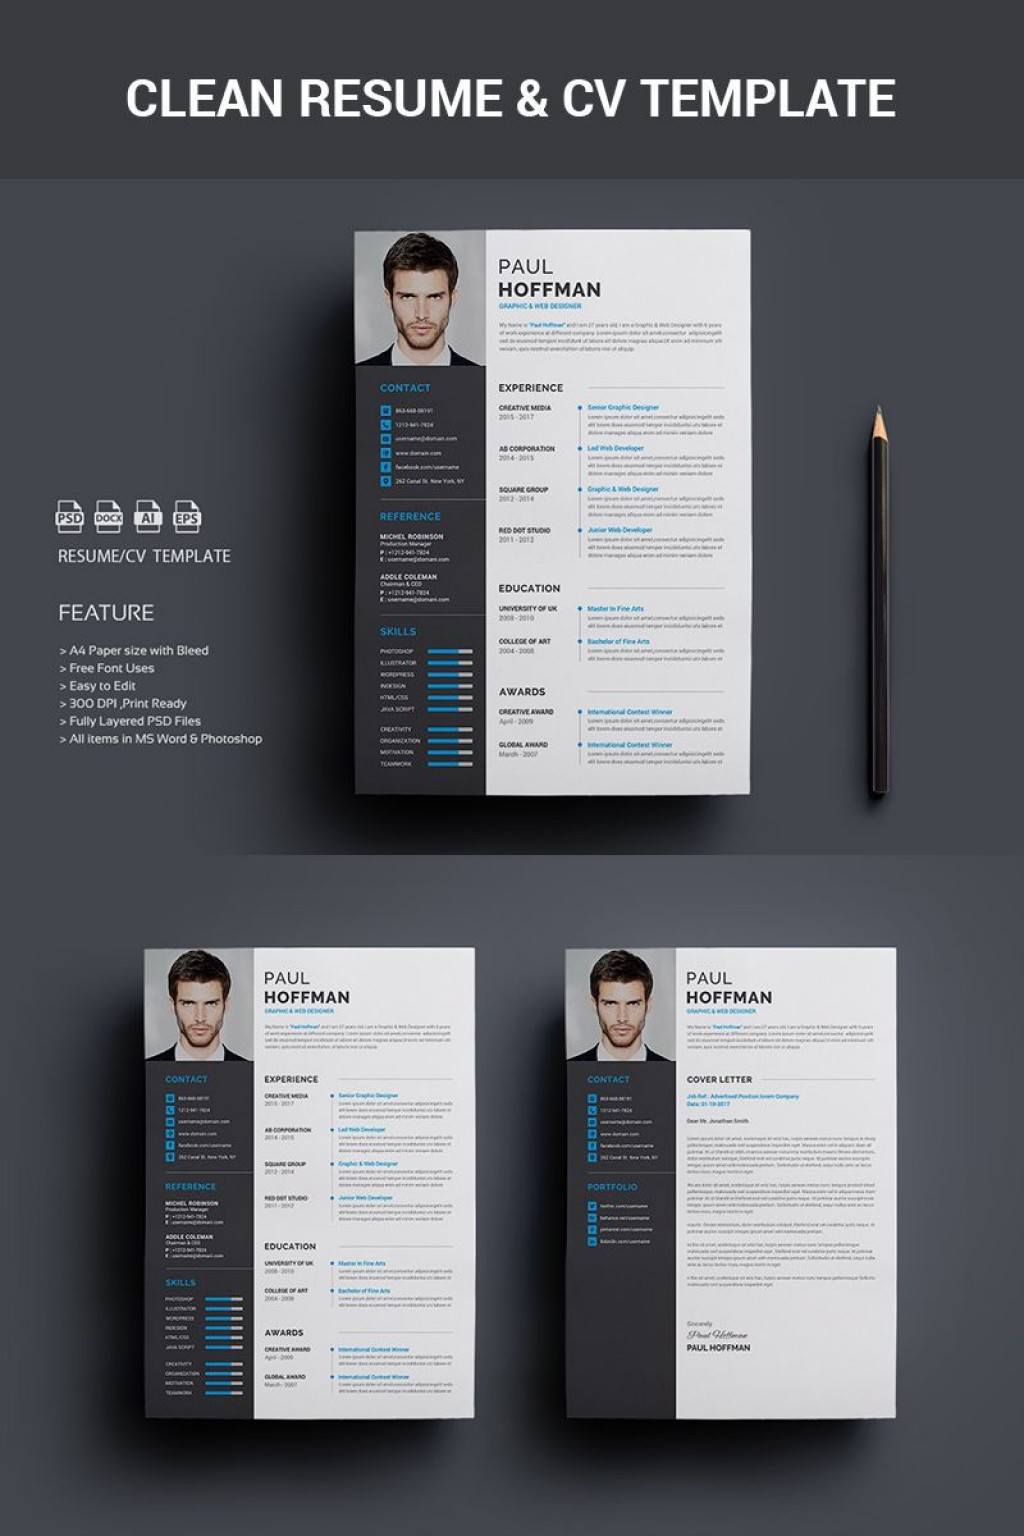 001 Exceptional Psd Cv Template Free Image  2018 Vector Photo And File Download ArchitectLarge